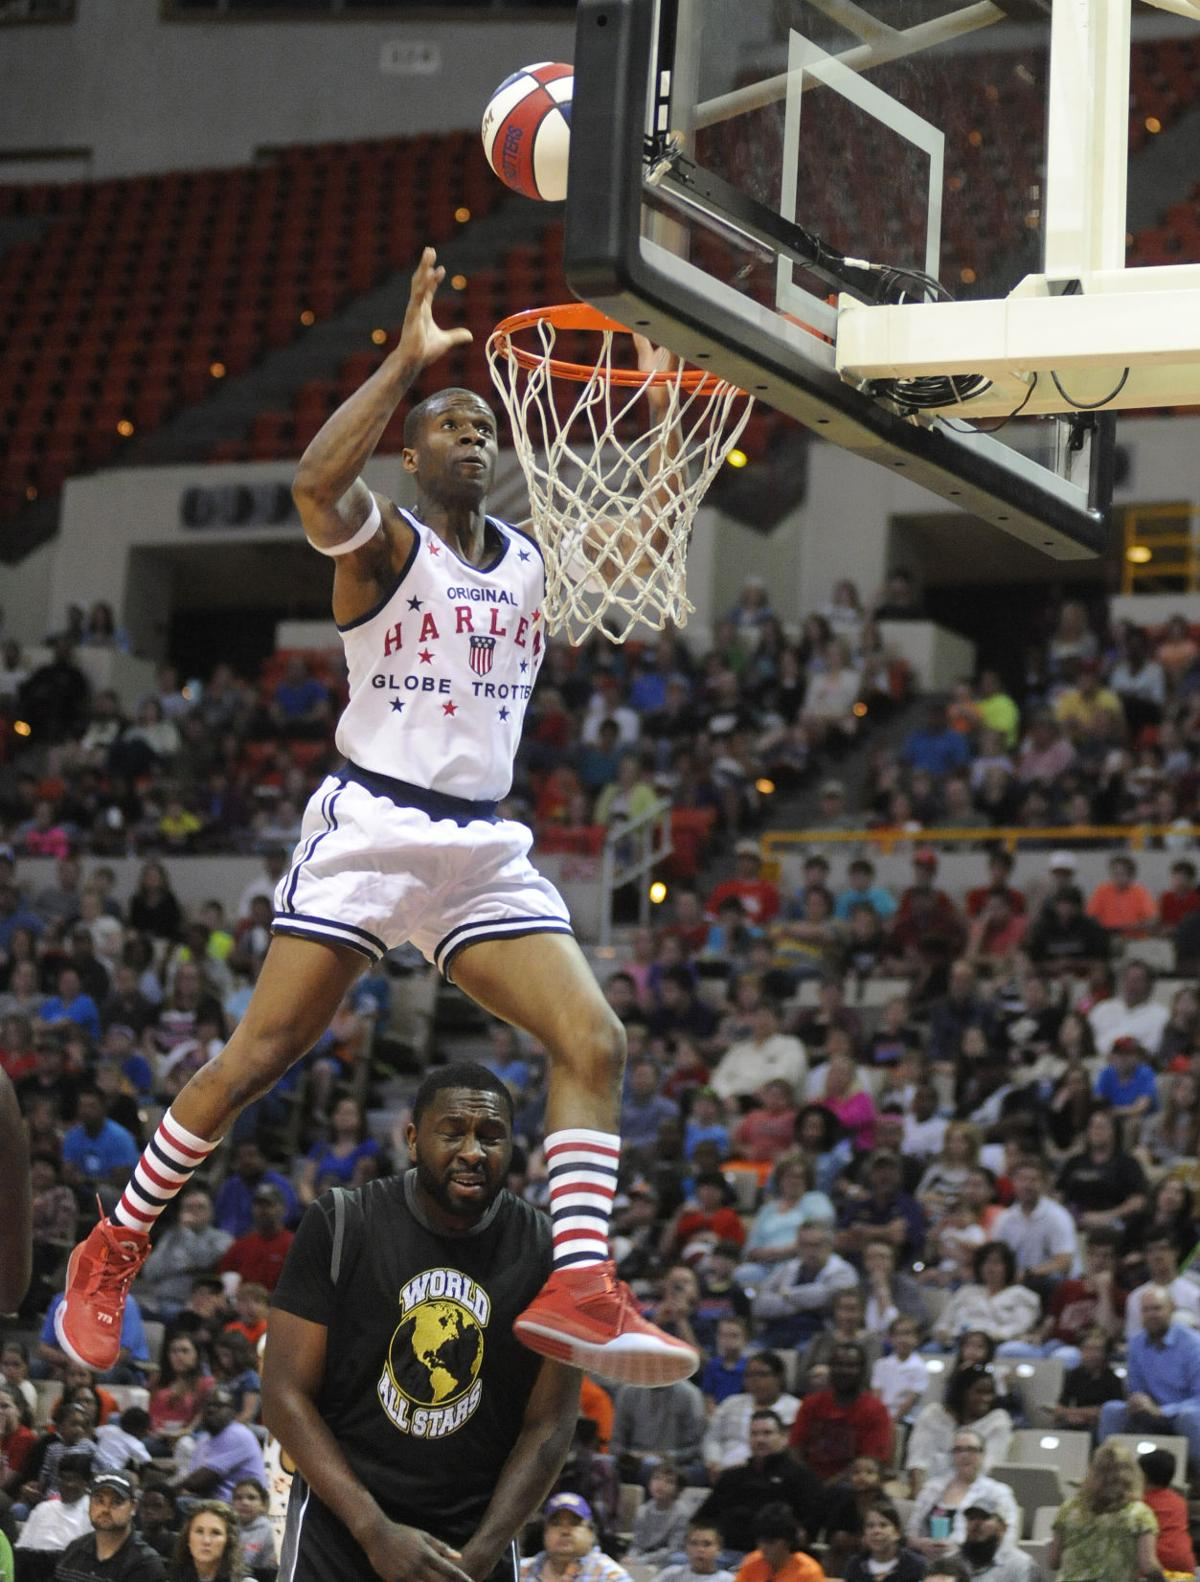 Globetrotters copy for Red